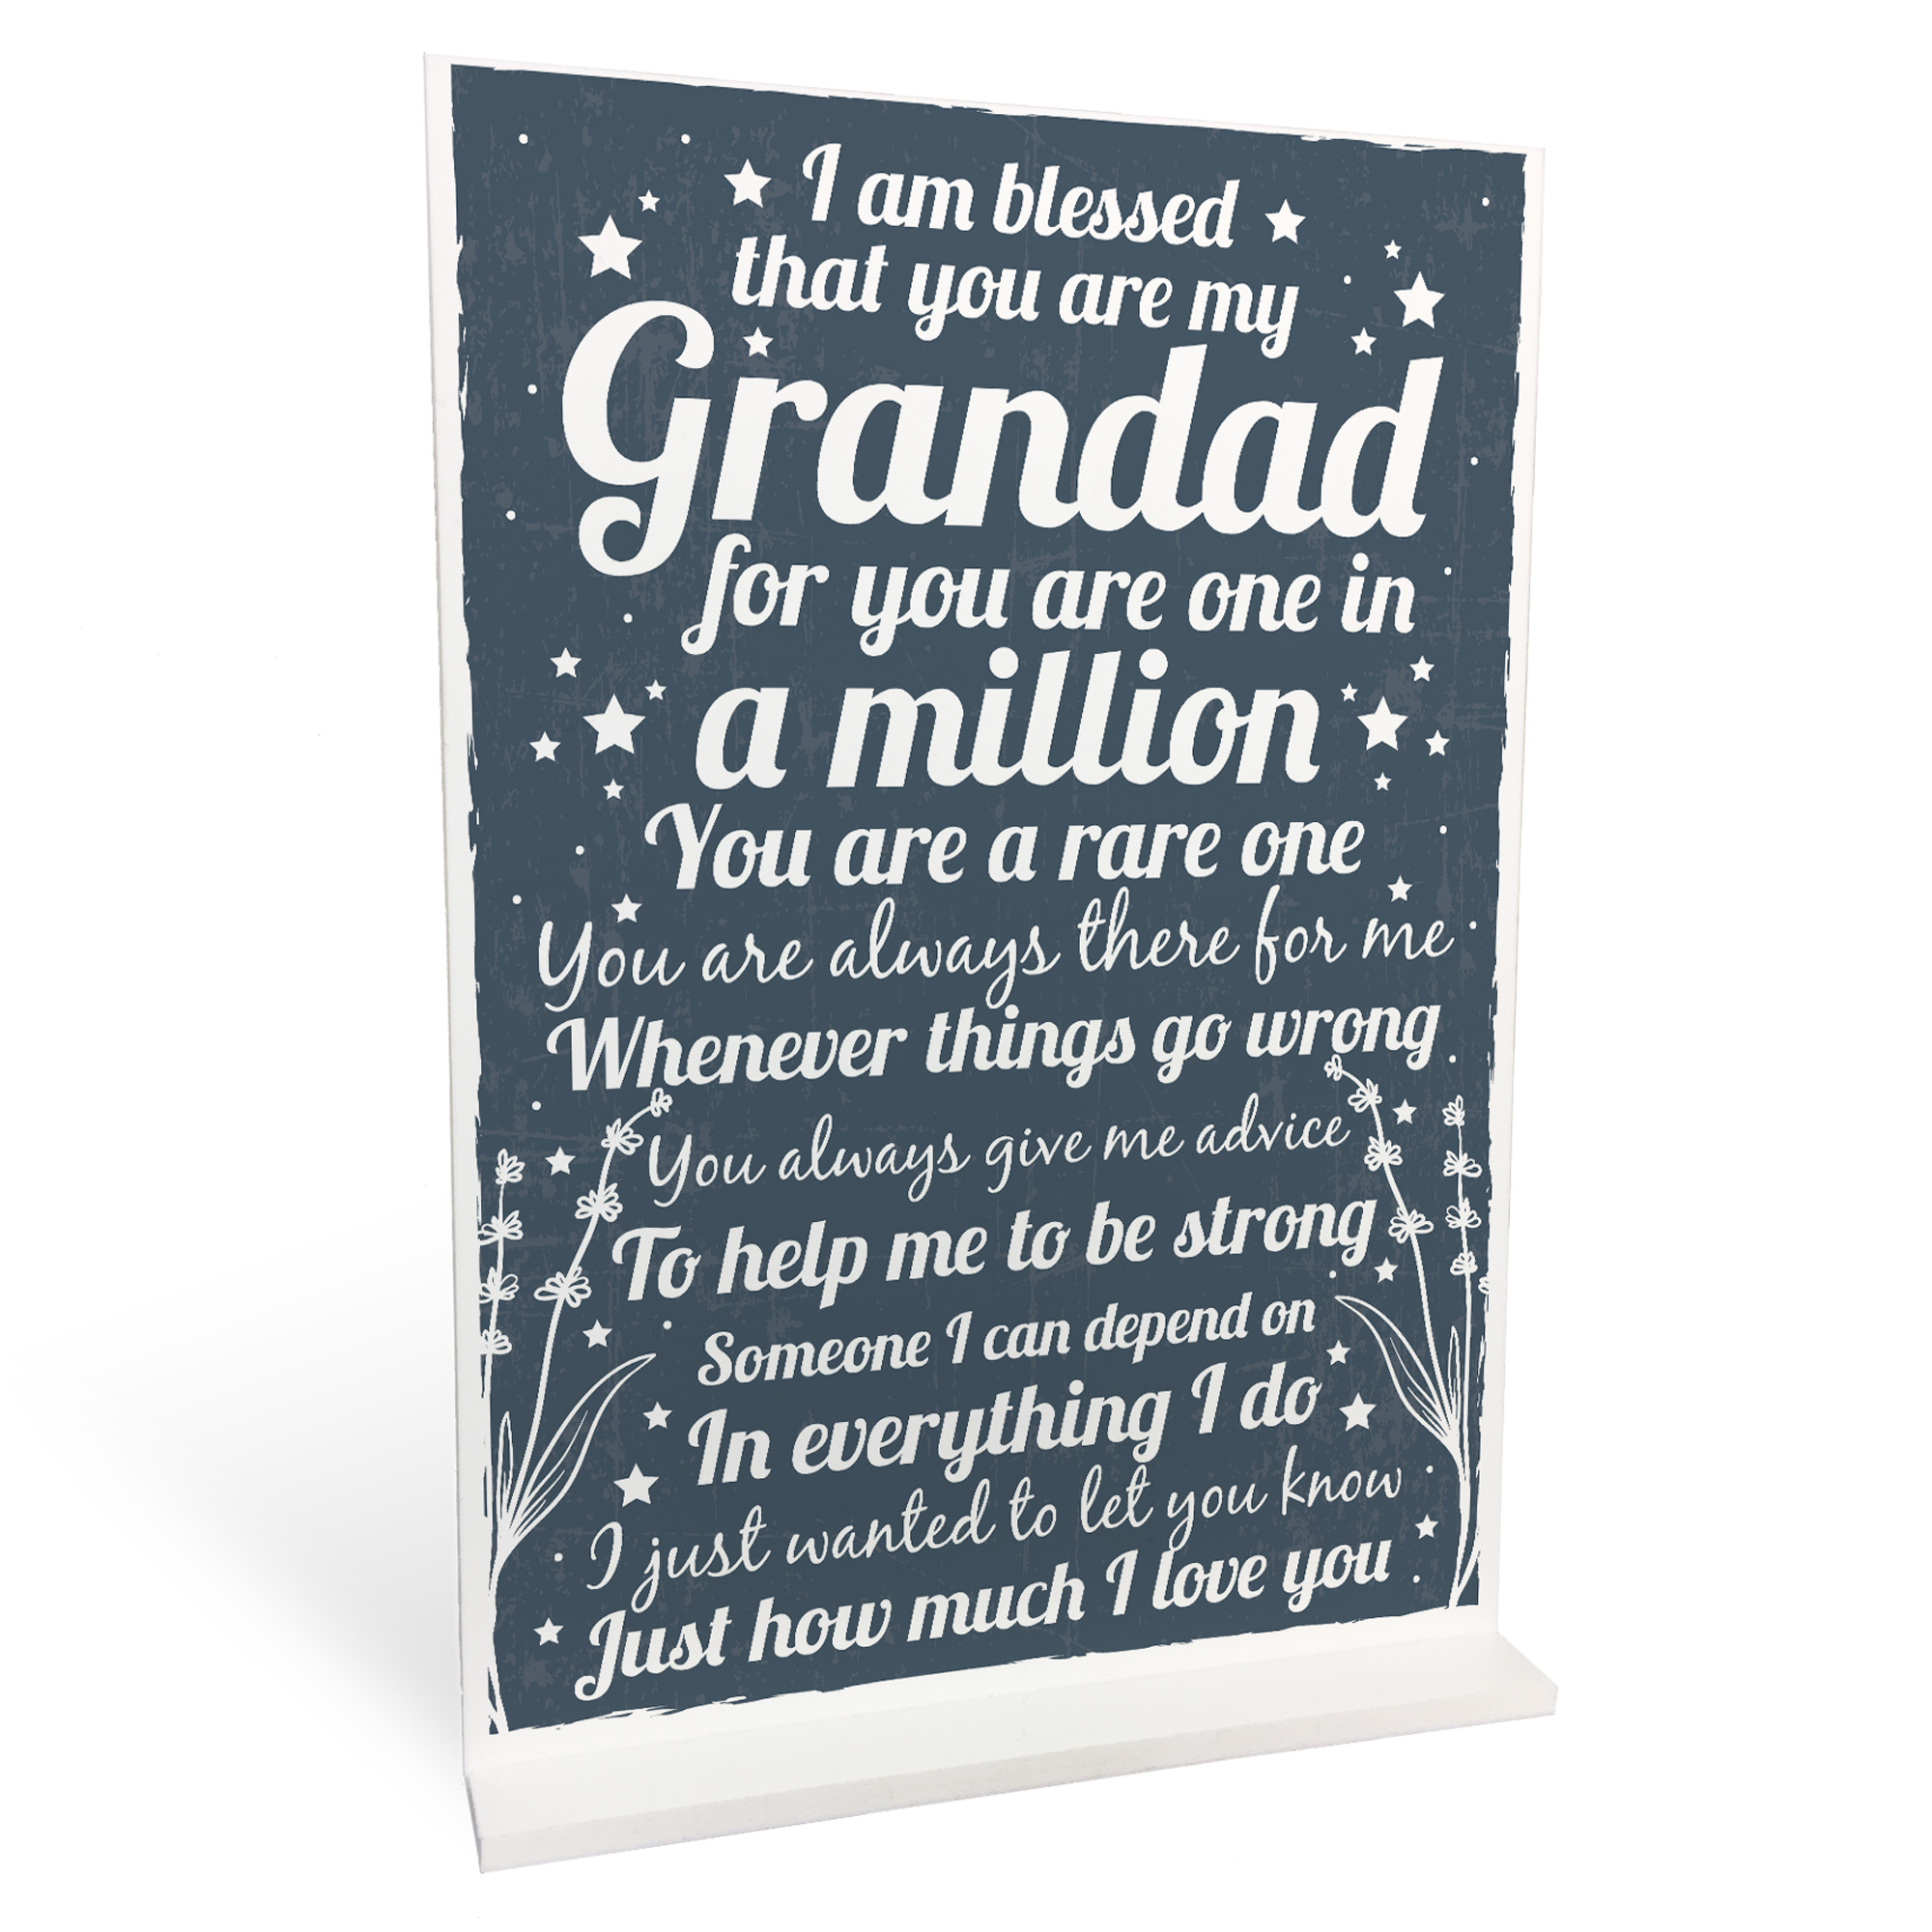 Details About Christmas Birthday Gifts For Grandad Grandparents Standing Plaque Thank You Gift